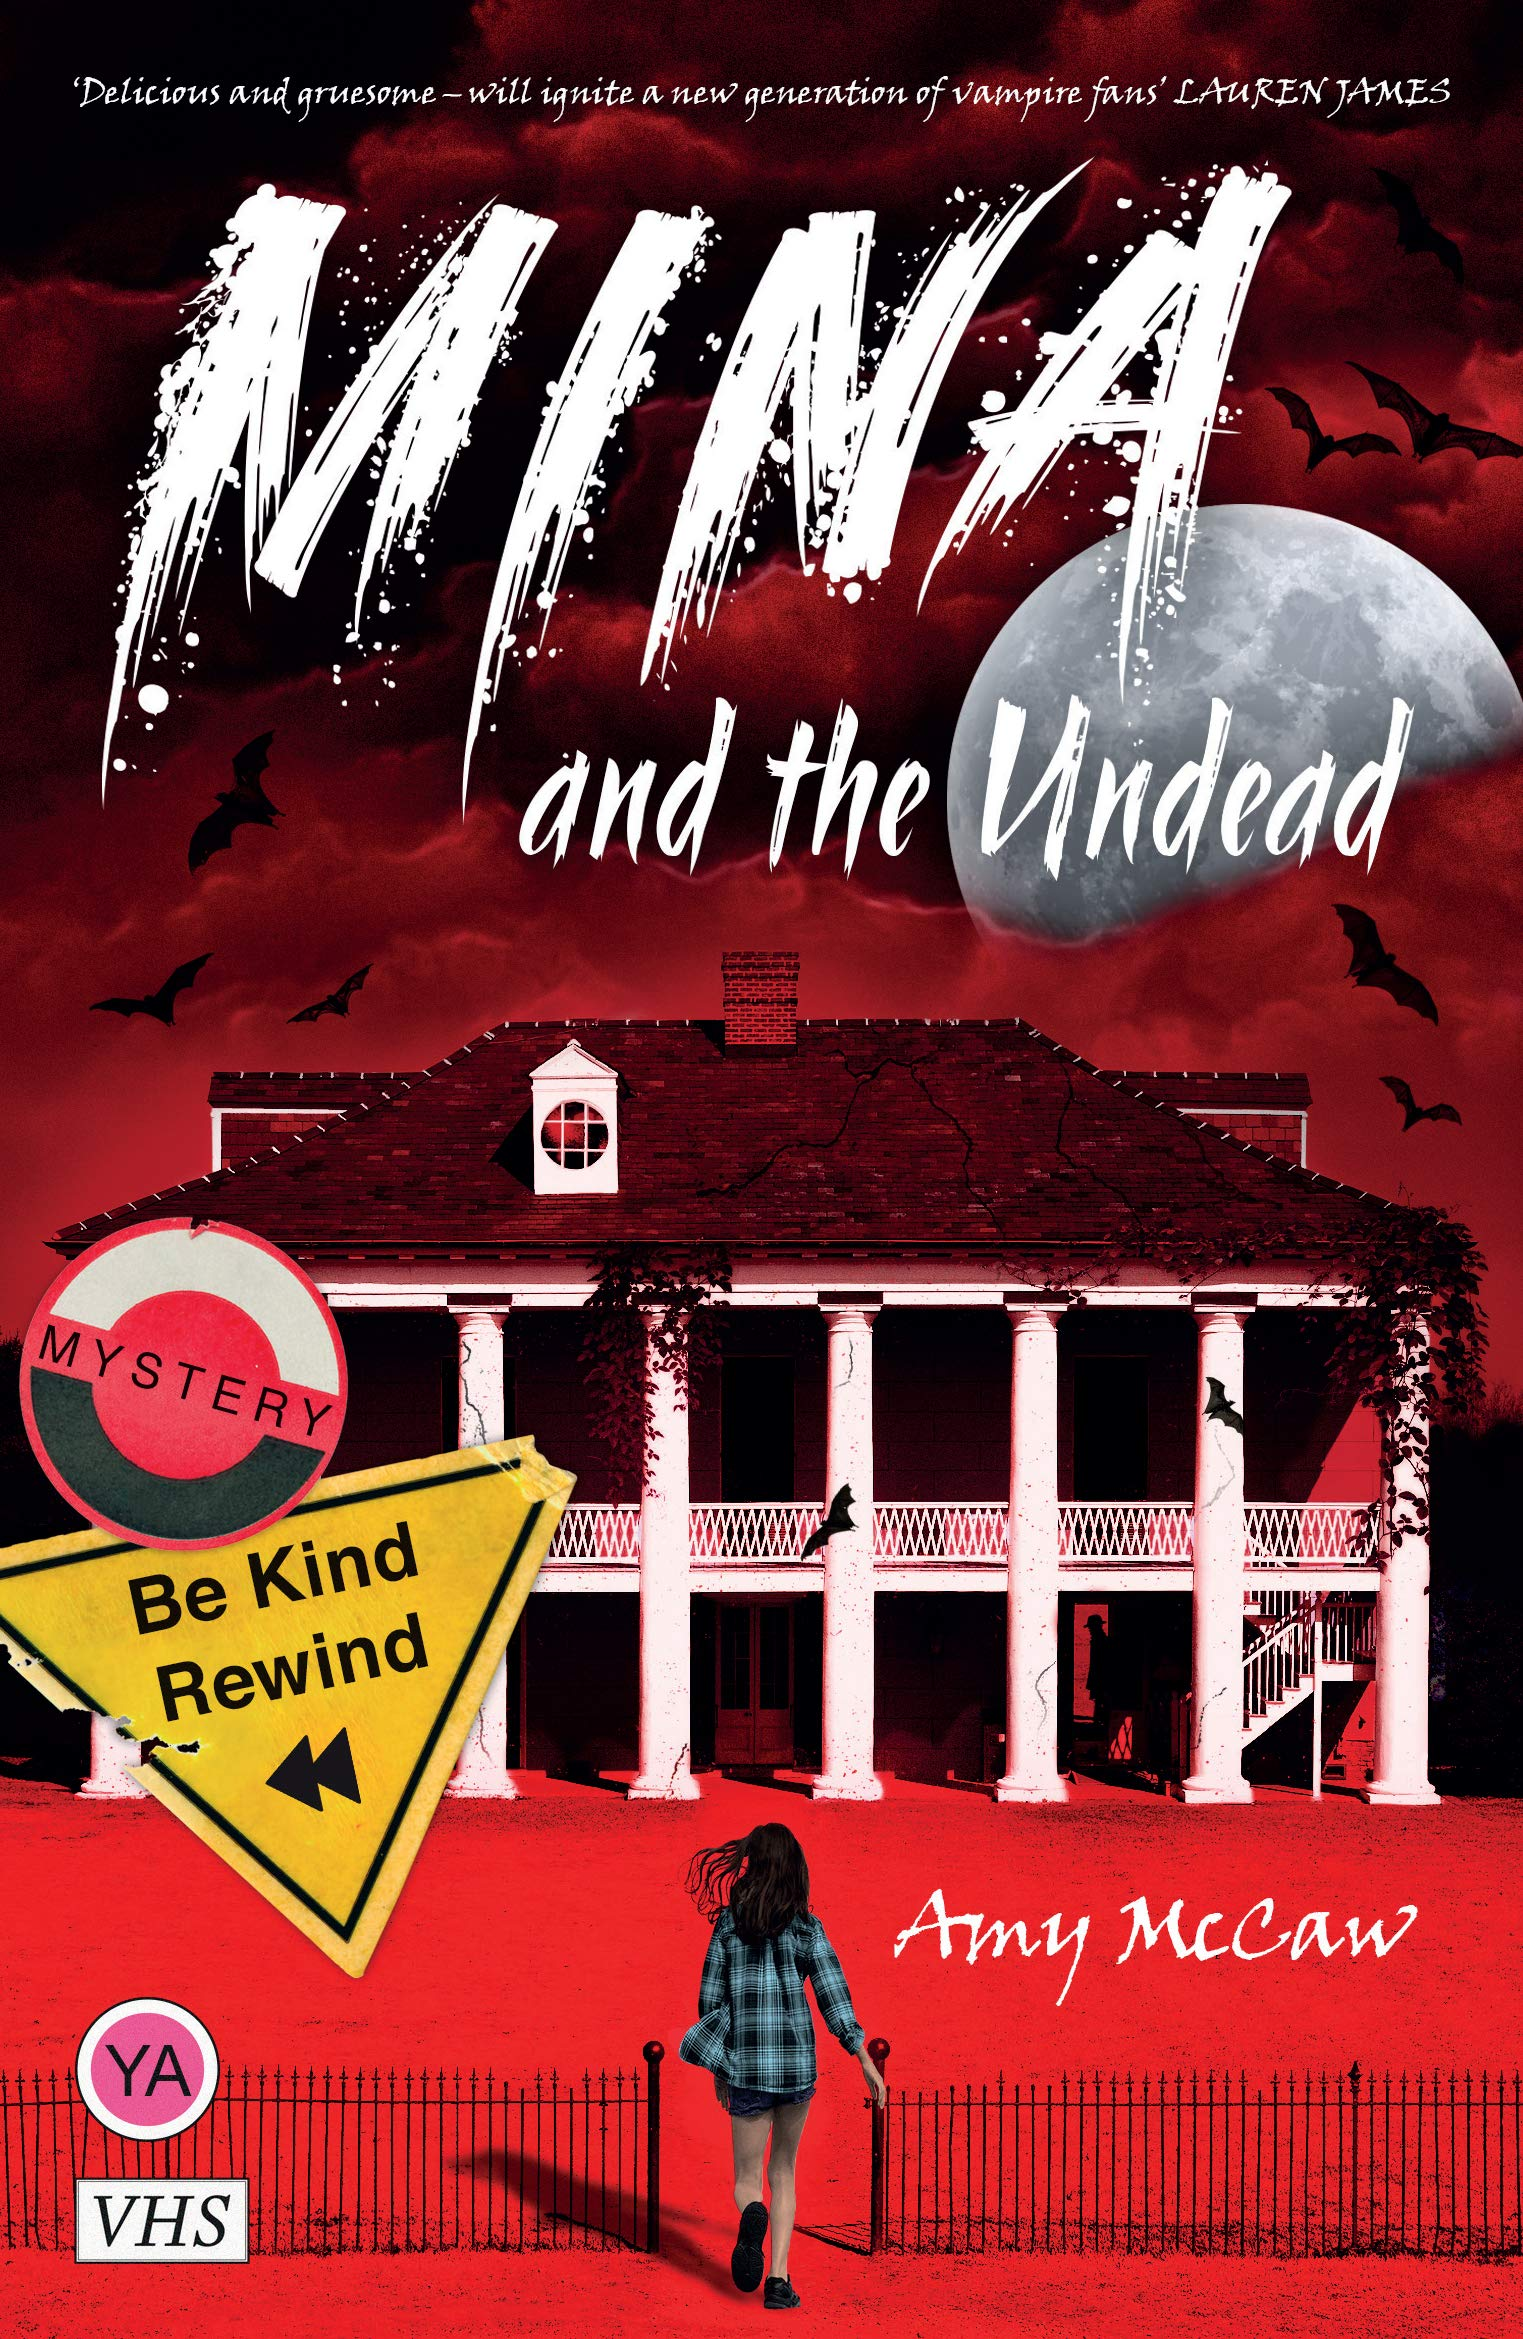 Mina and the Undead: Amazon.co.uk: Amy McCaw: 9781912979479: Books